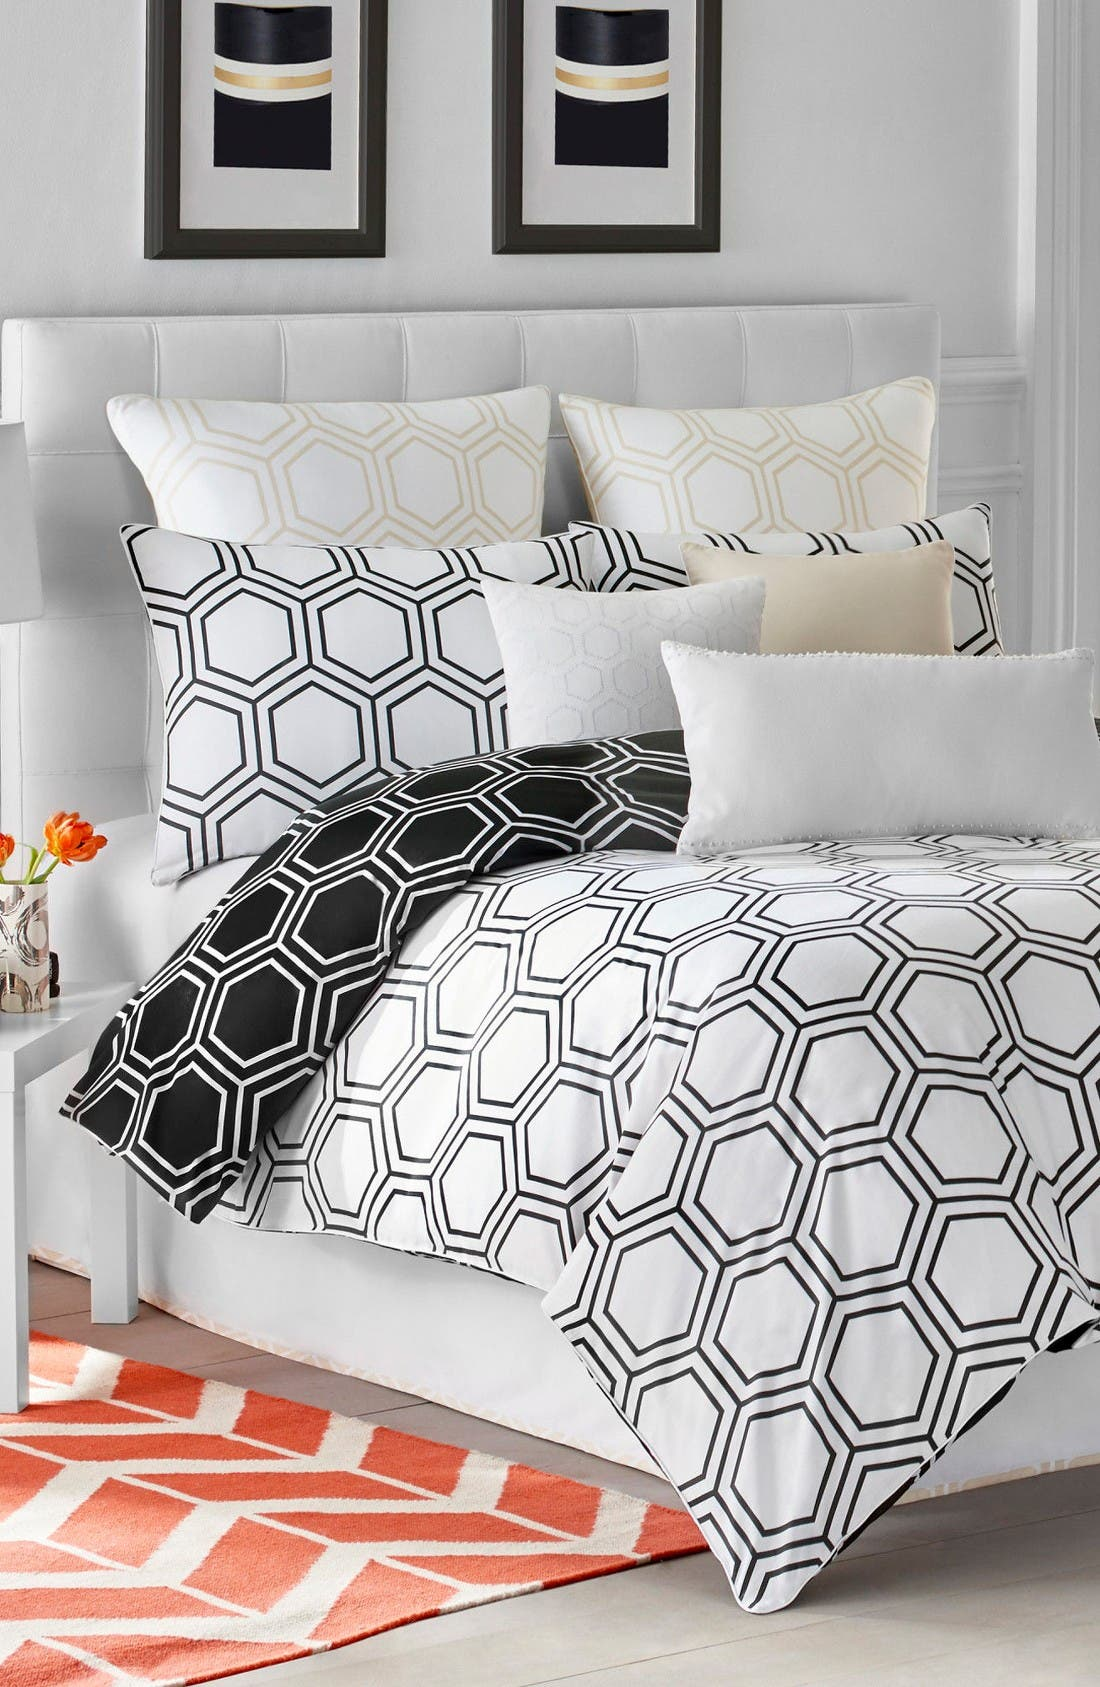 Jill Rosenwald Blackpoint Hex Bedding Collection